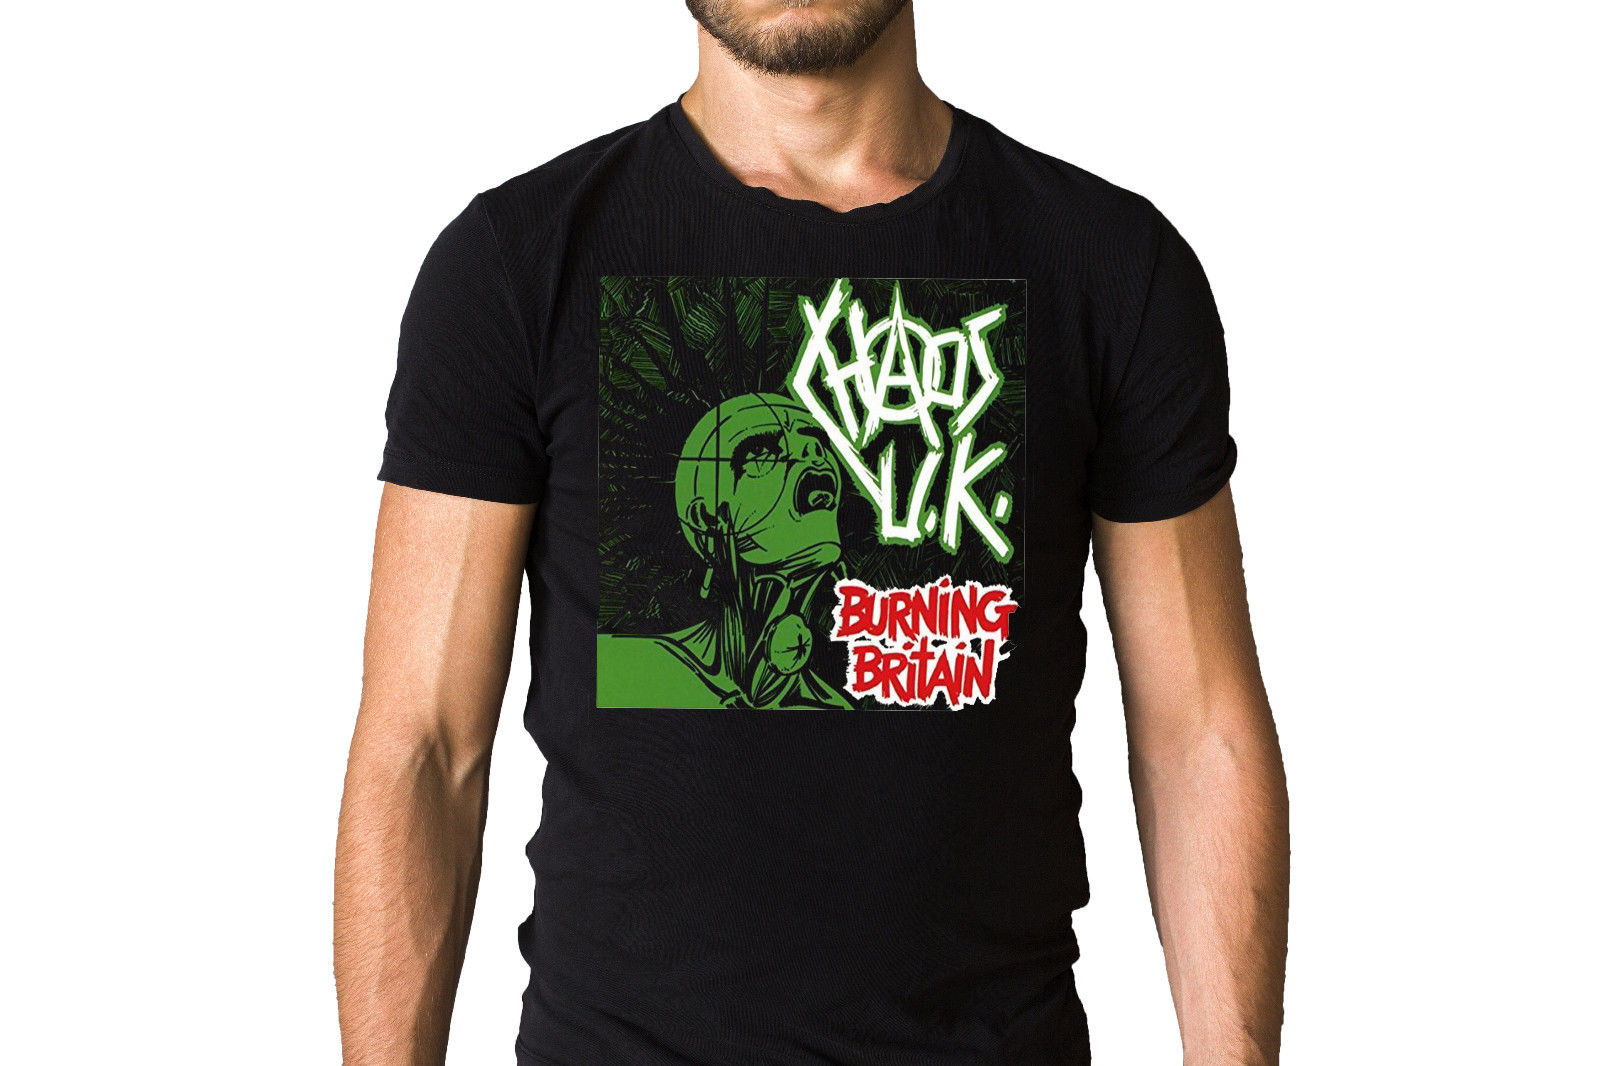 Chaos UK Burning Britain 1982 Iconic Green Album Cover Black T-Shirt Printed Round Men T Shirt Cheap Price Top Tee